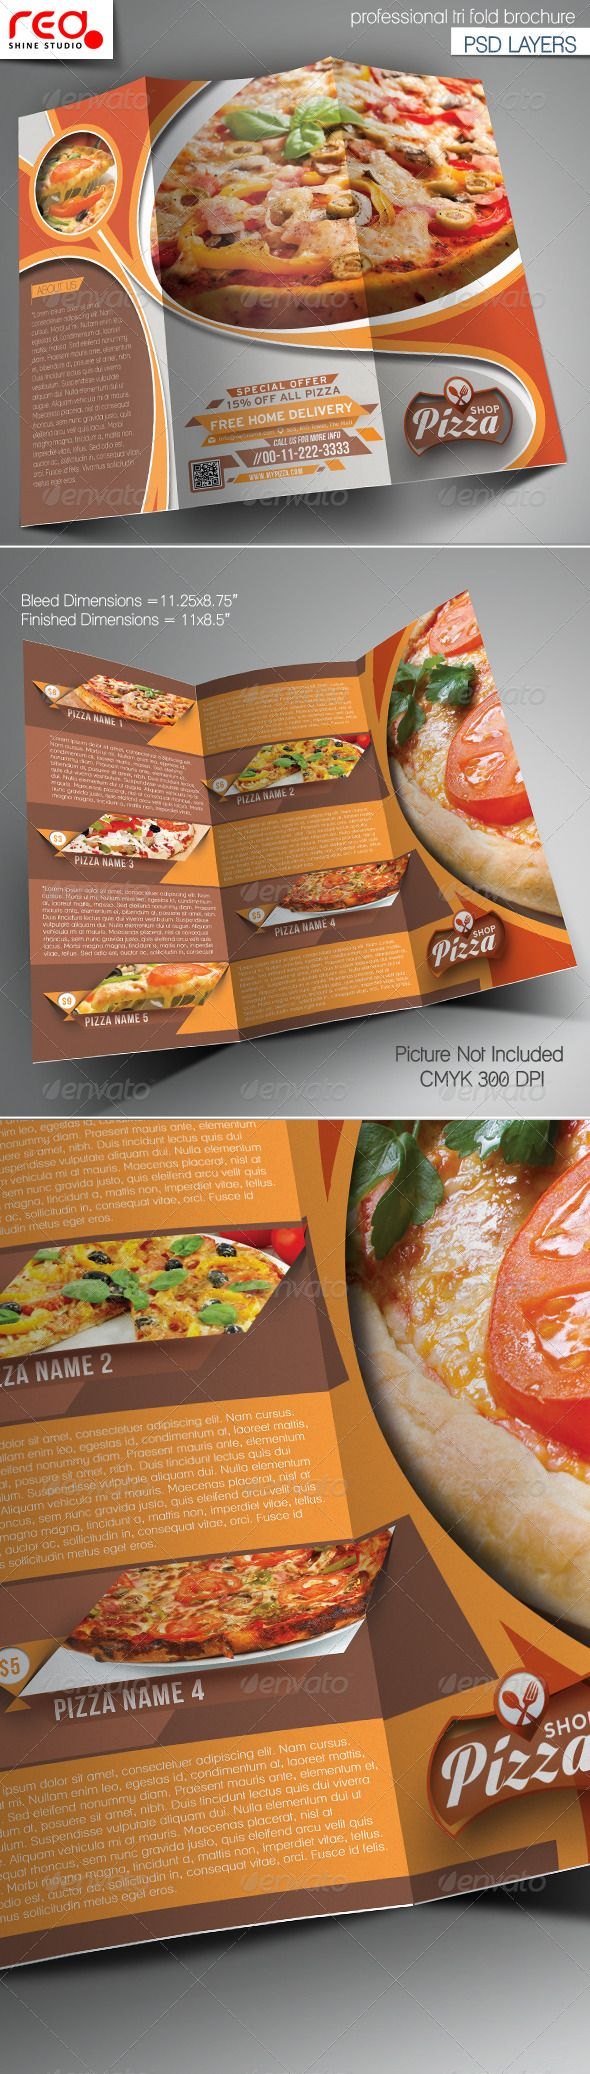 Pizza Shop Trifold Brochure Template  Brochure Template Pizza